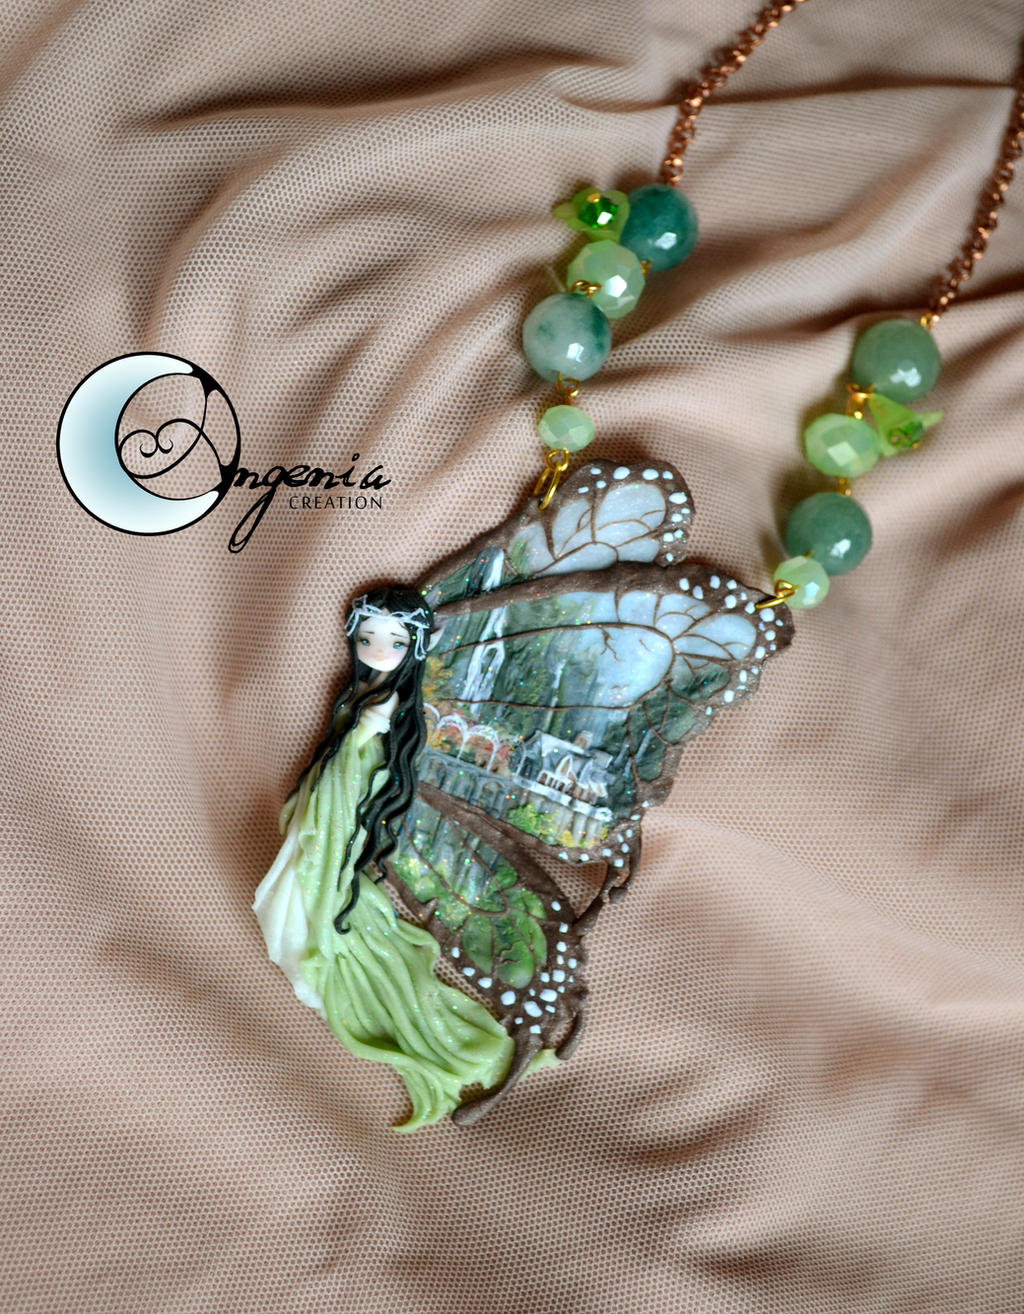 fairy necklace i have a dream rivendell by AngeniaC